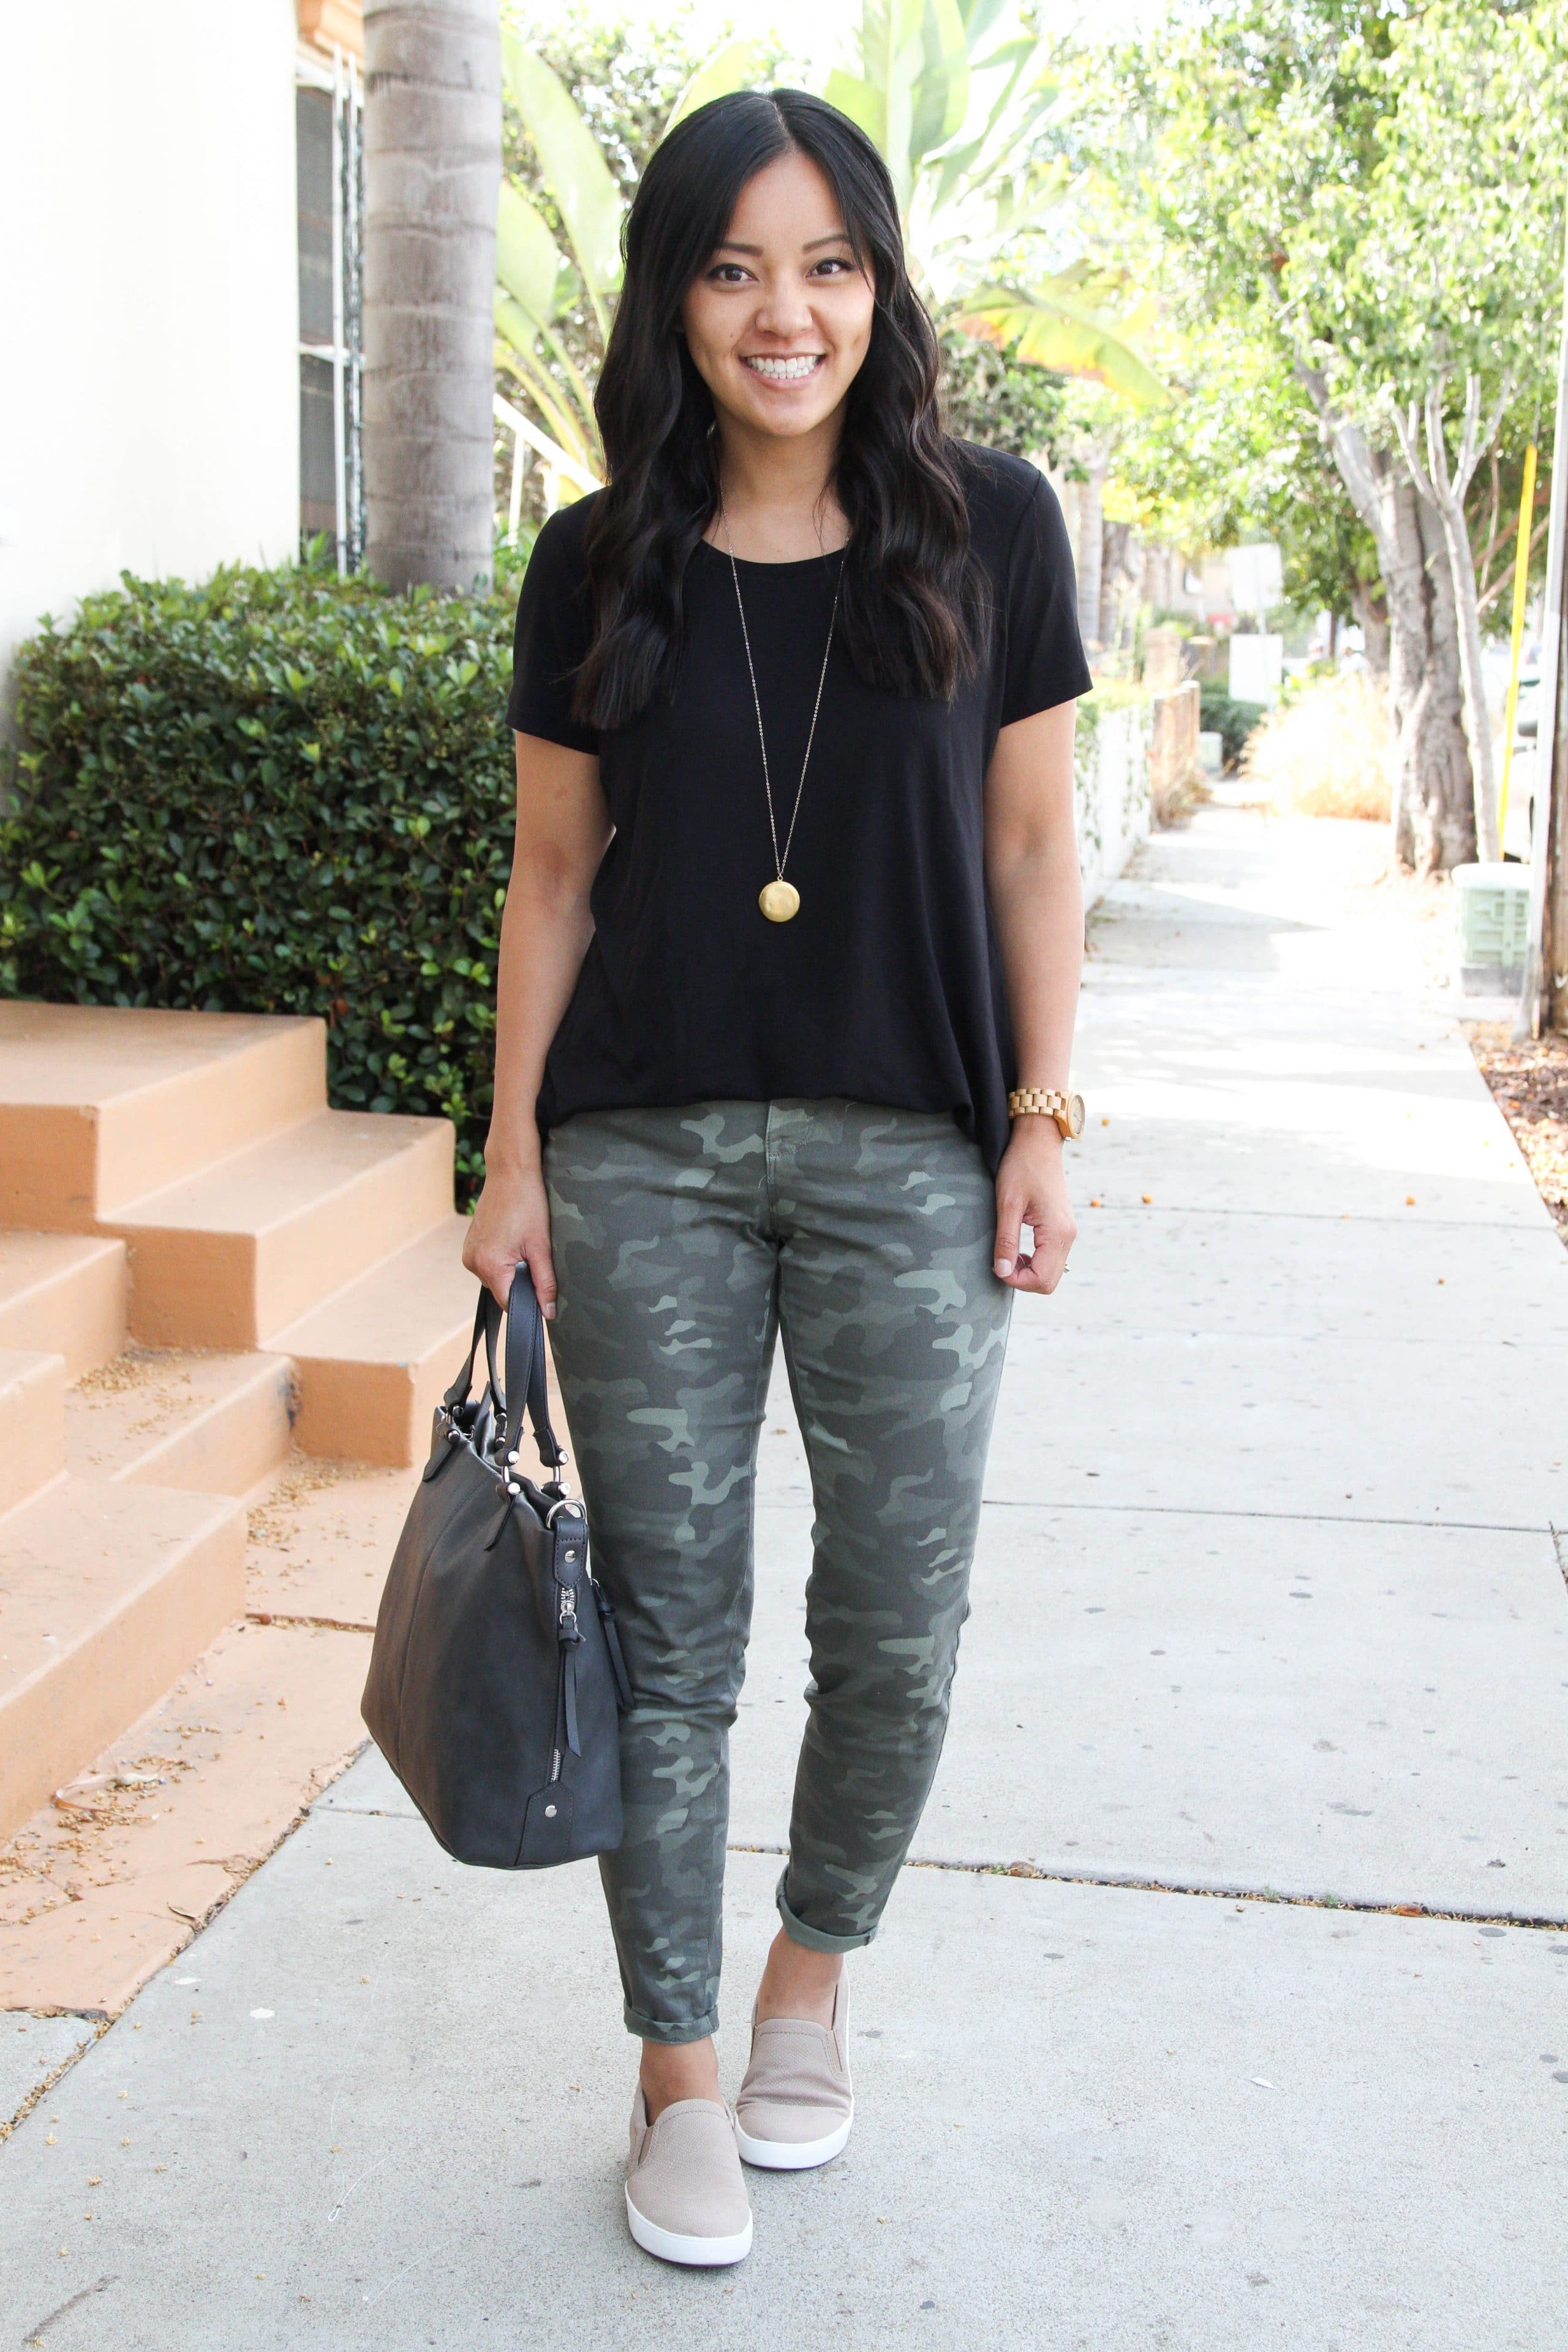 taupe sneakers + black top + green camo pants + grey tote